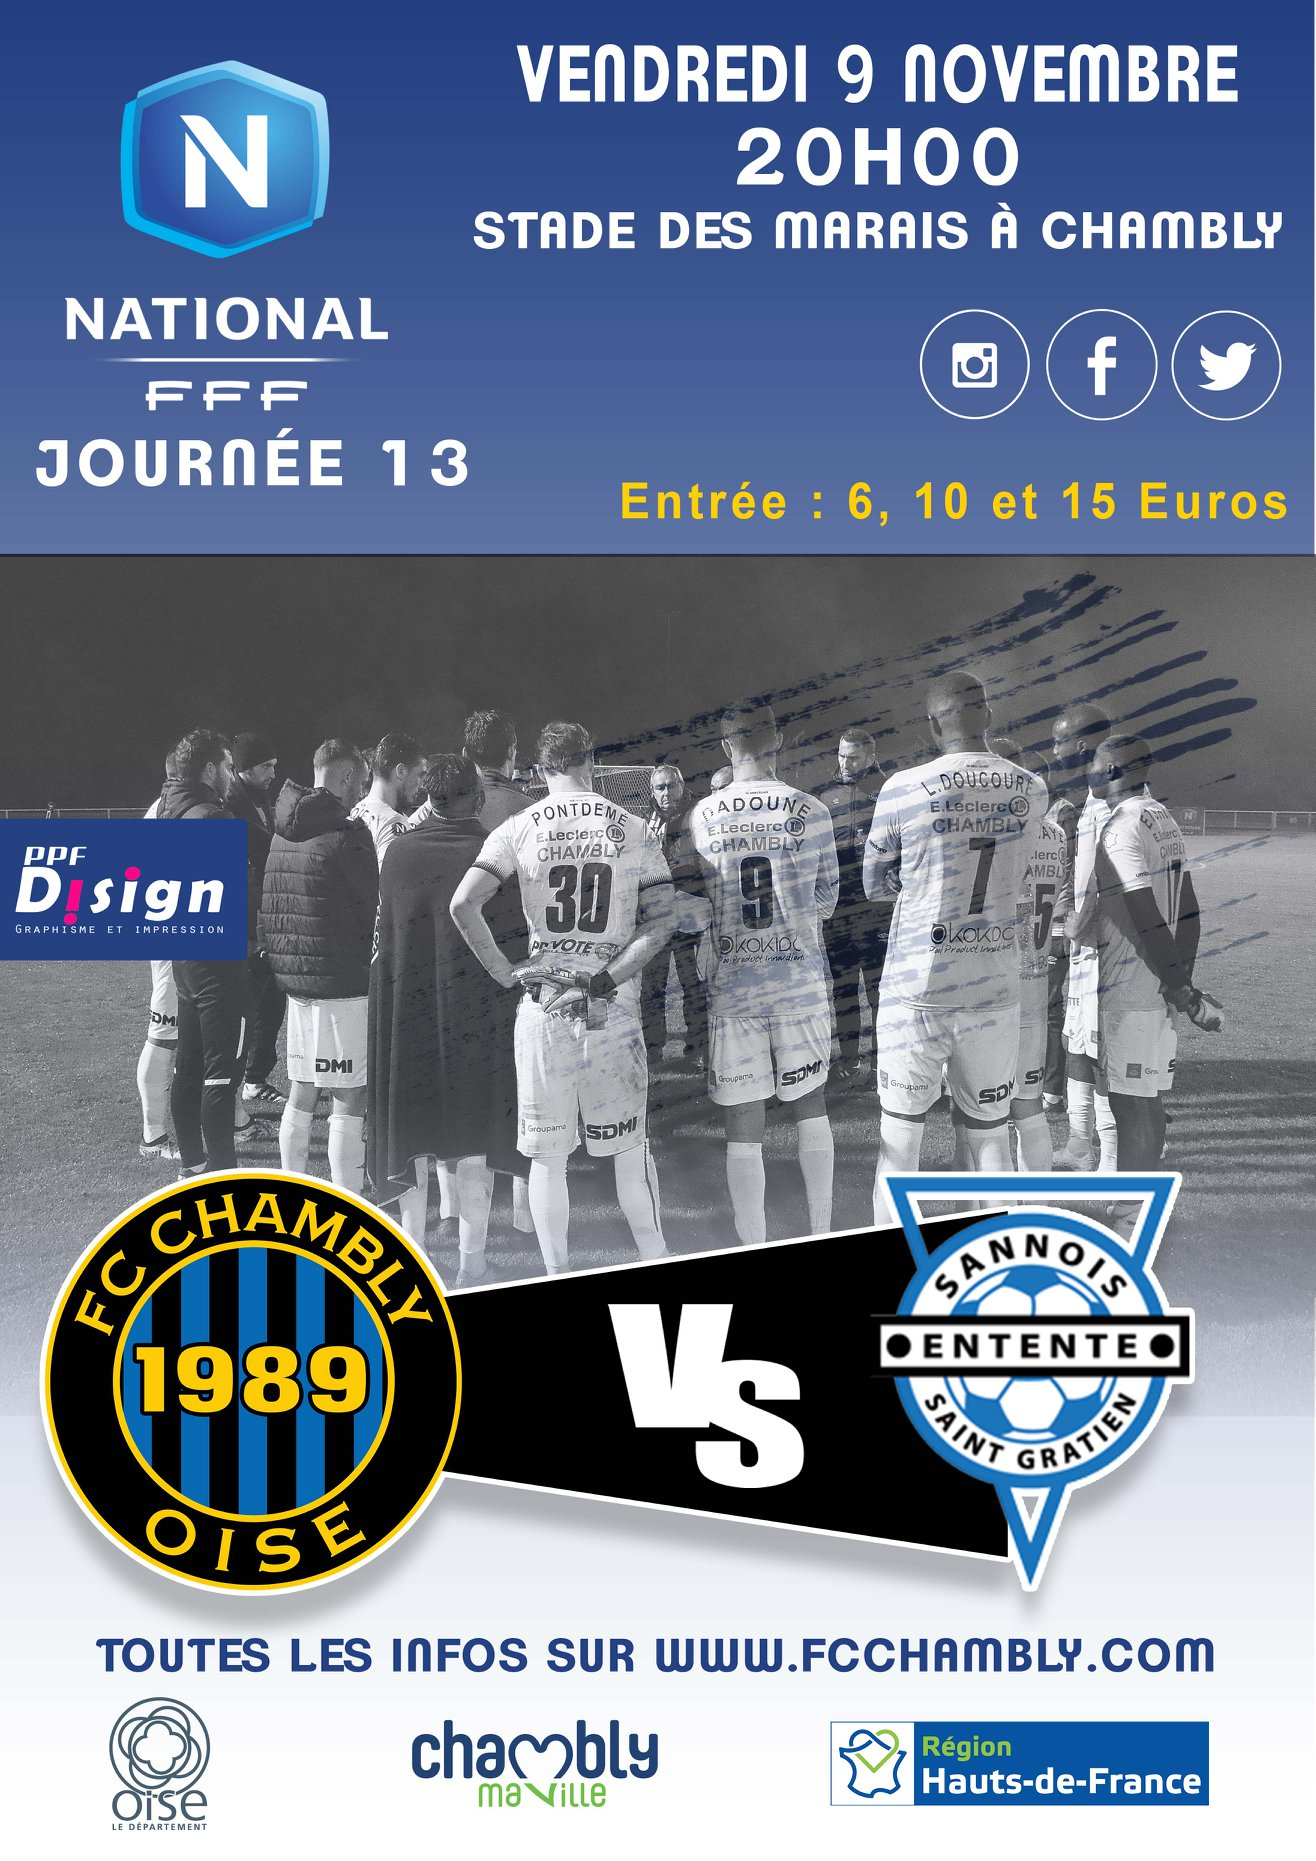 Chambly - Entente Sanois Saint-Gratien